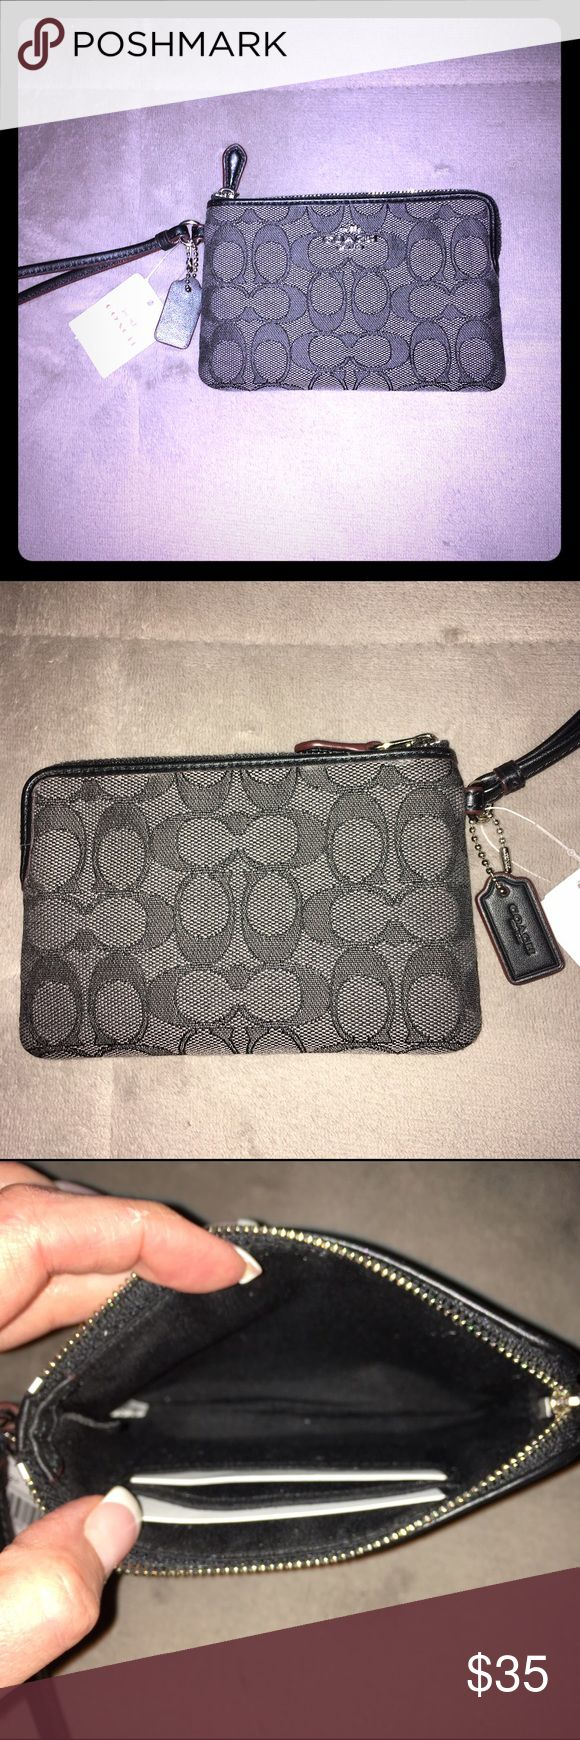 381 Best My Posh Picks Images On Pinterest Shirts Blouse And Grey Imo X6 Lucky Bnwt Black Coach Signature Wristlet Brand New With Tags Never Used Authentic